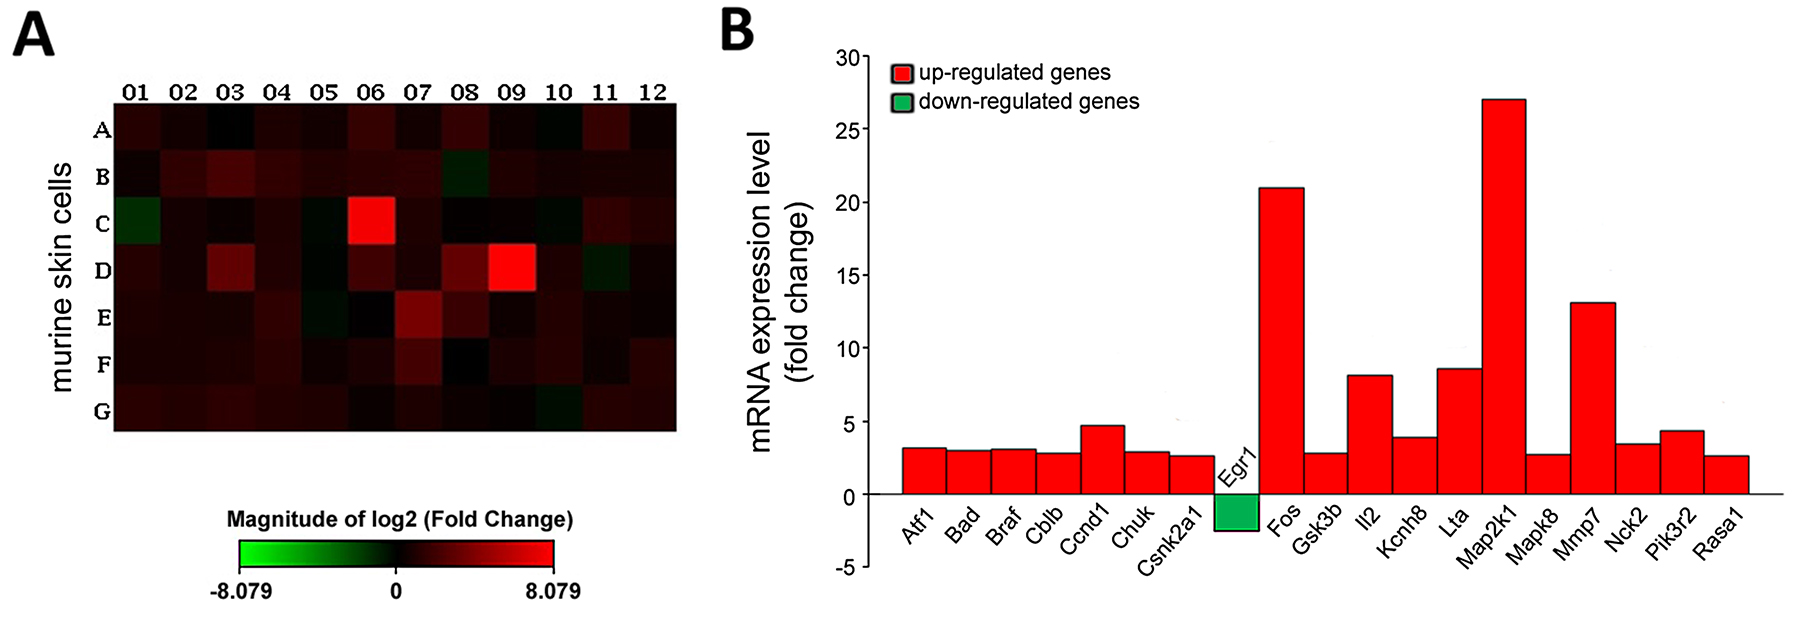 CRBPI deletion influences gene signaling in imiquimod-treated murine skin cells.